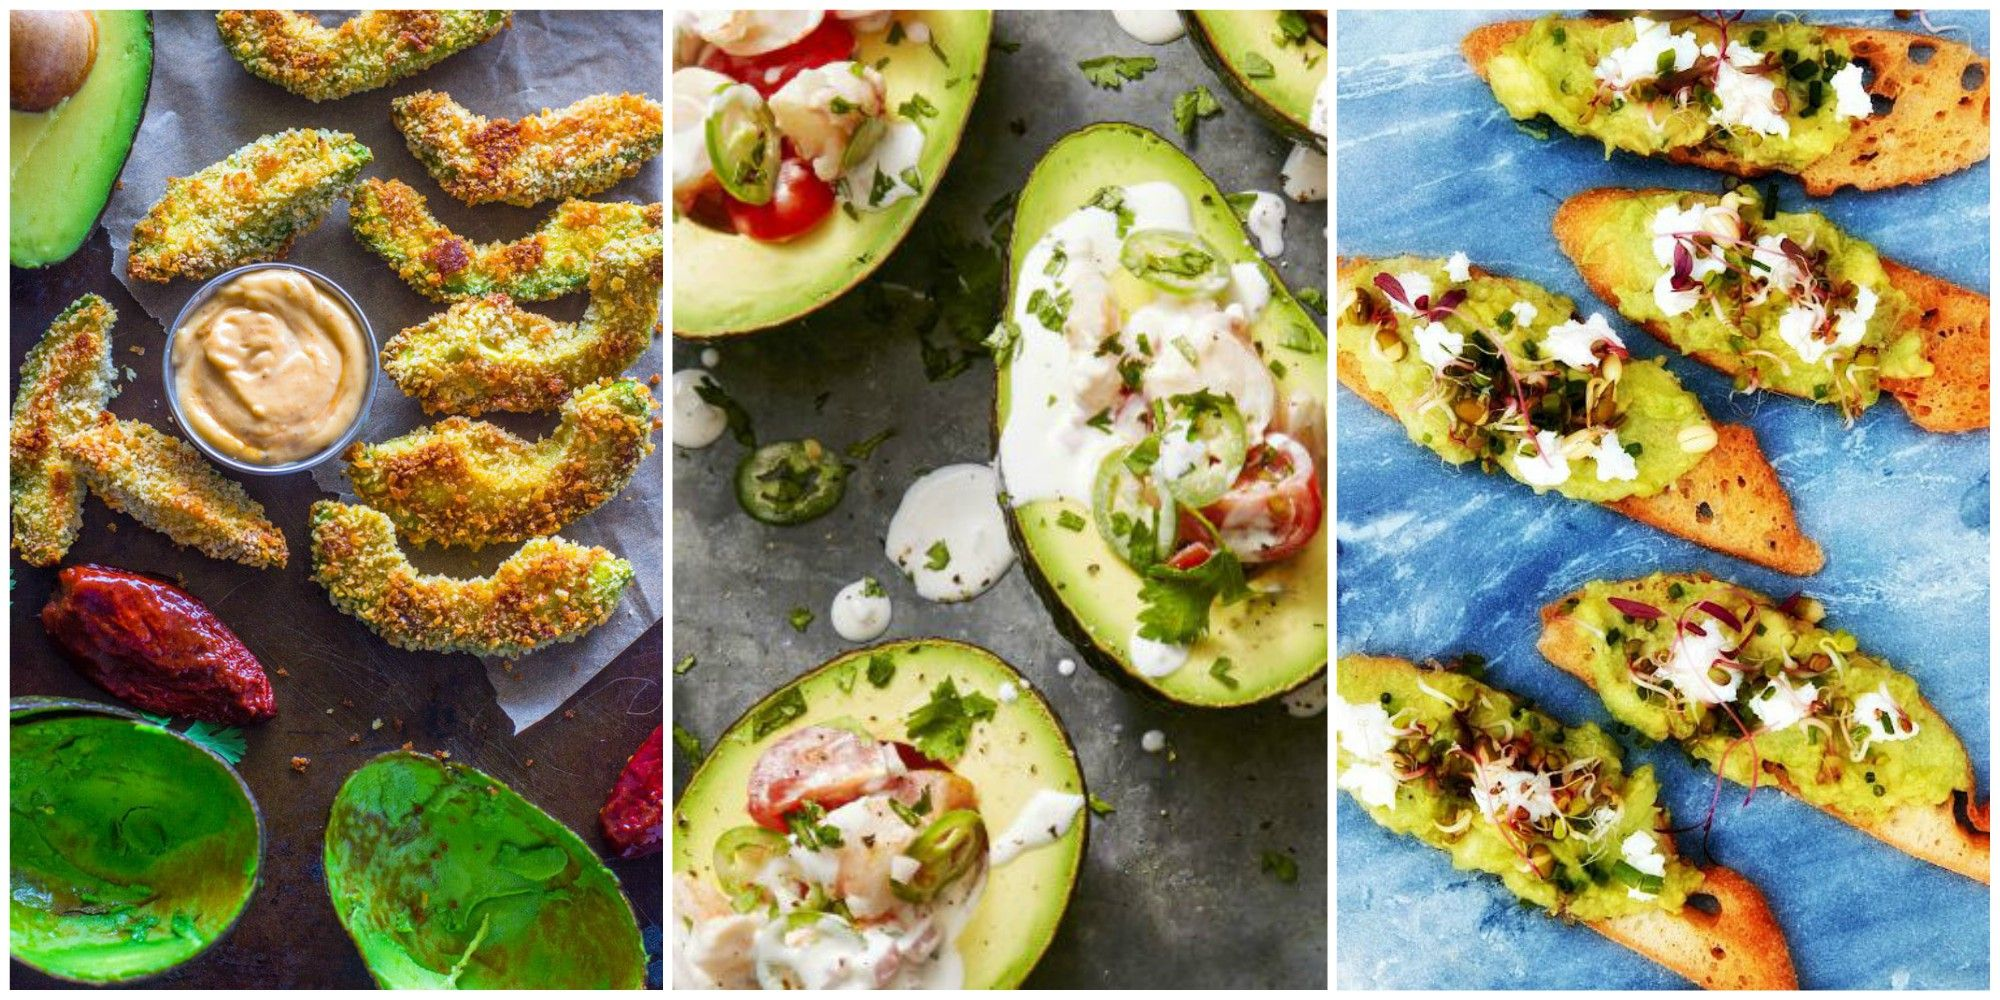 easy avocado recipes - cooking with avocadoes